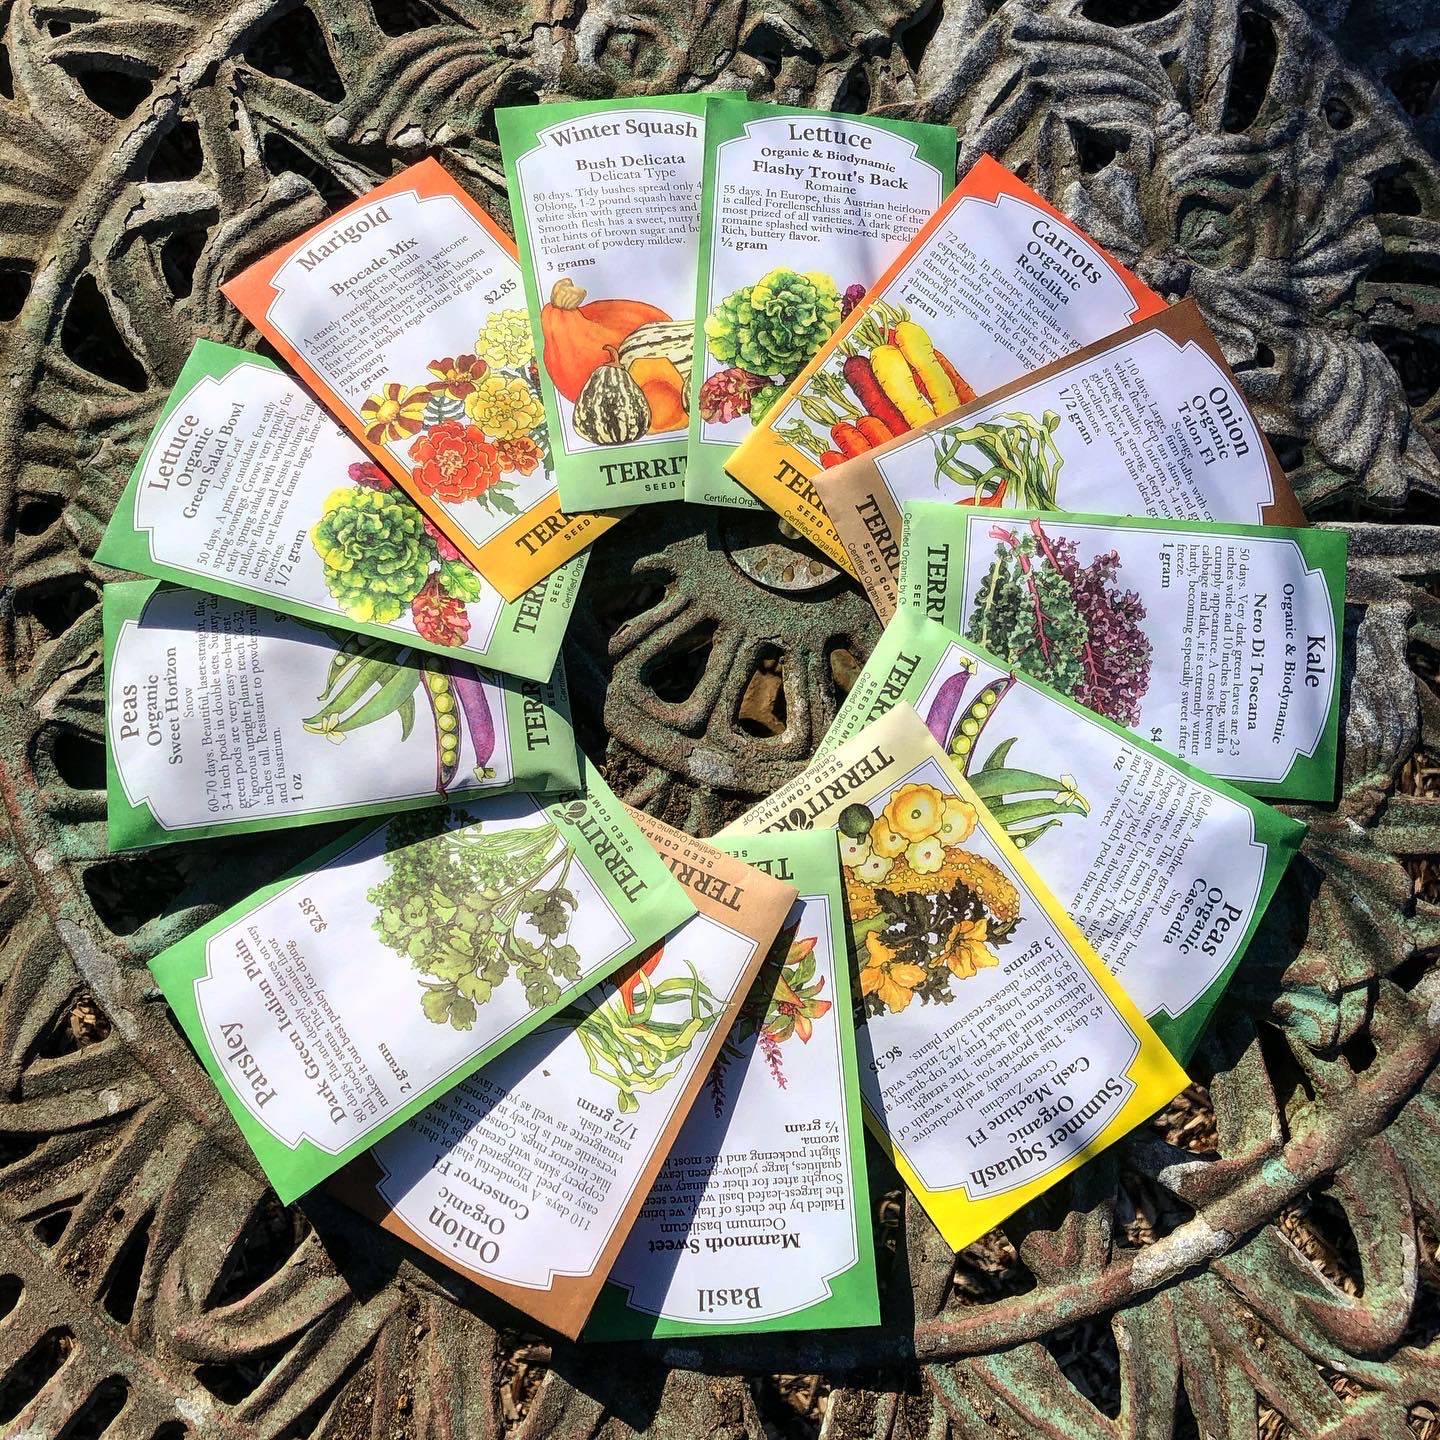 Territorial Seed packets